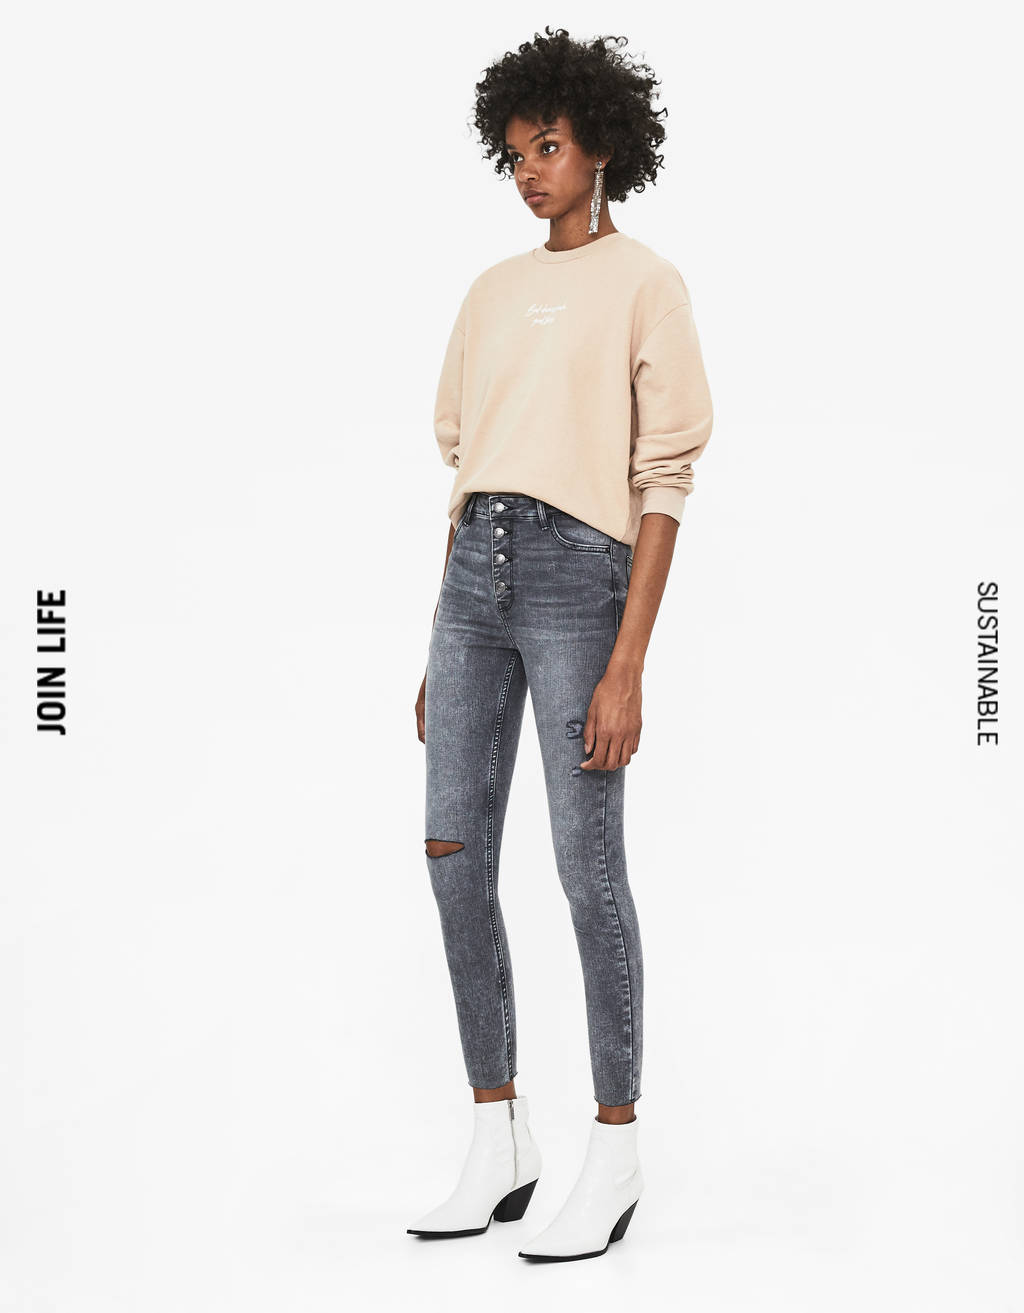 High waist button-front jeans